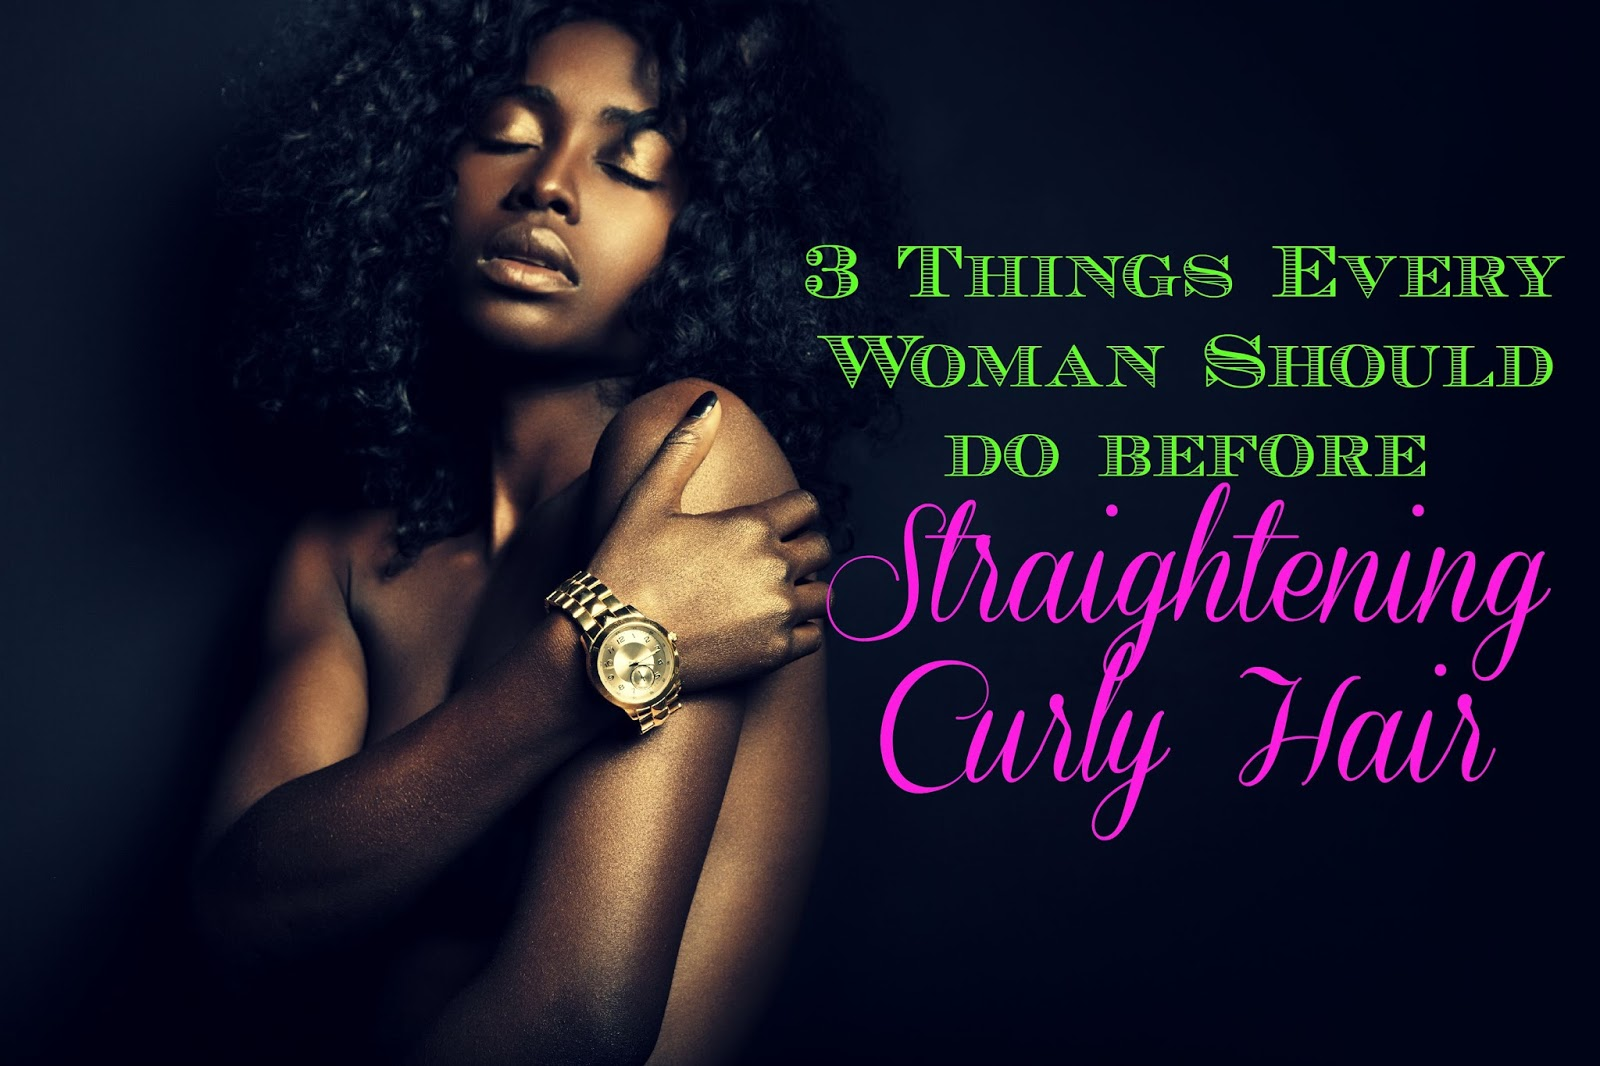 3 Things Every Woman Should do Before Straightening Curly Hair